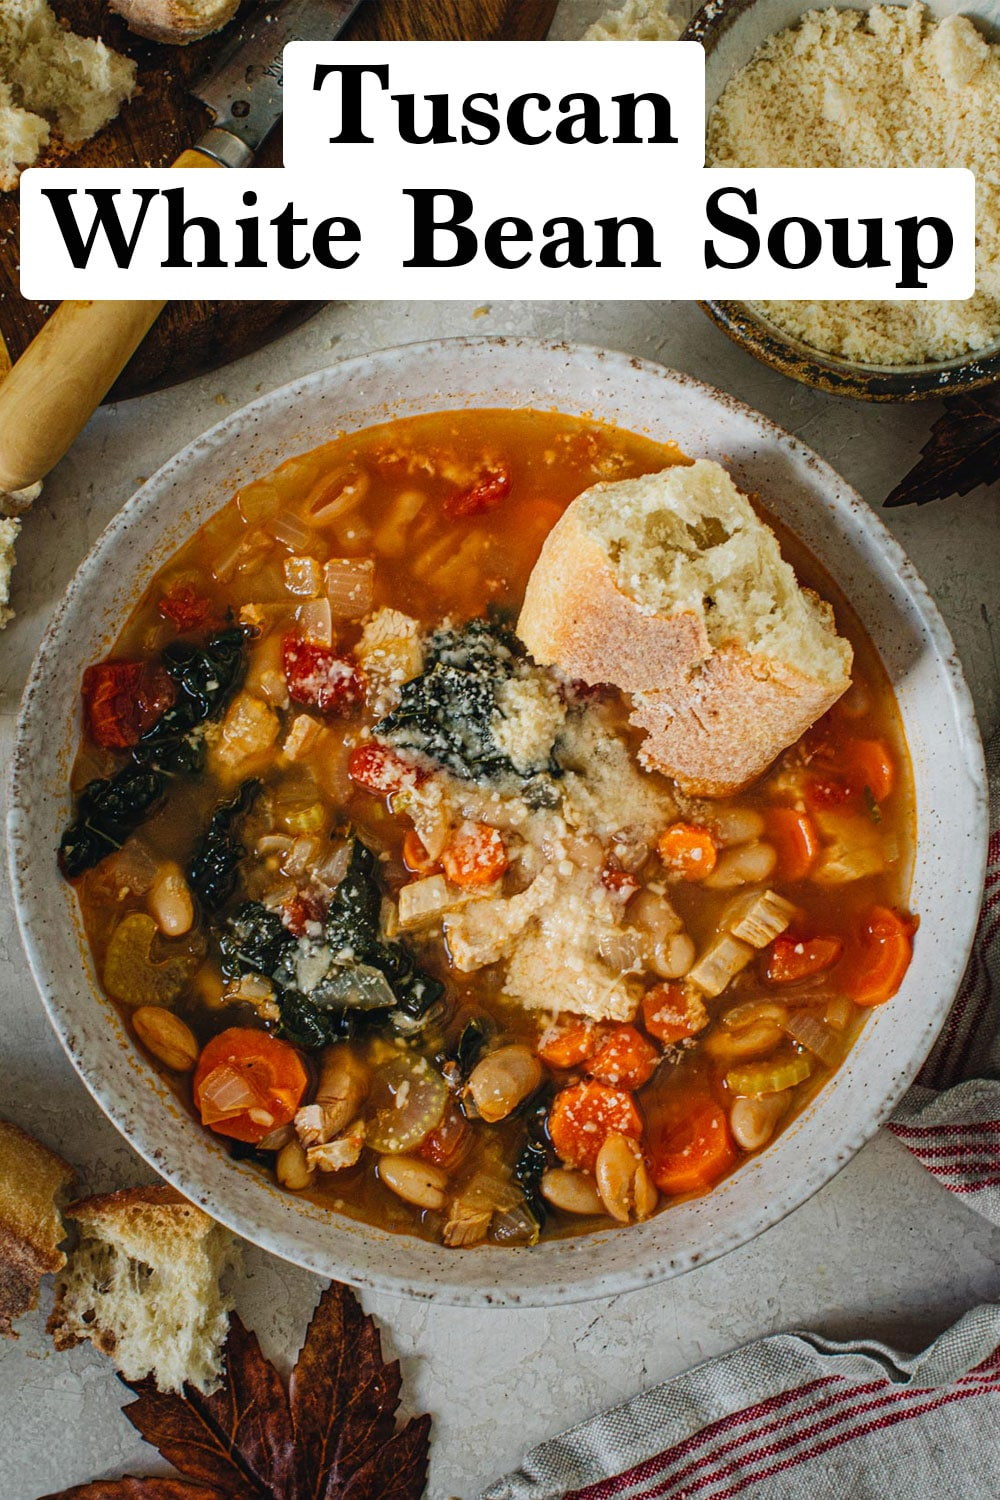 Tuscan white bean soup with crusty bread on top in a bowl.